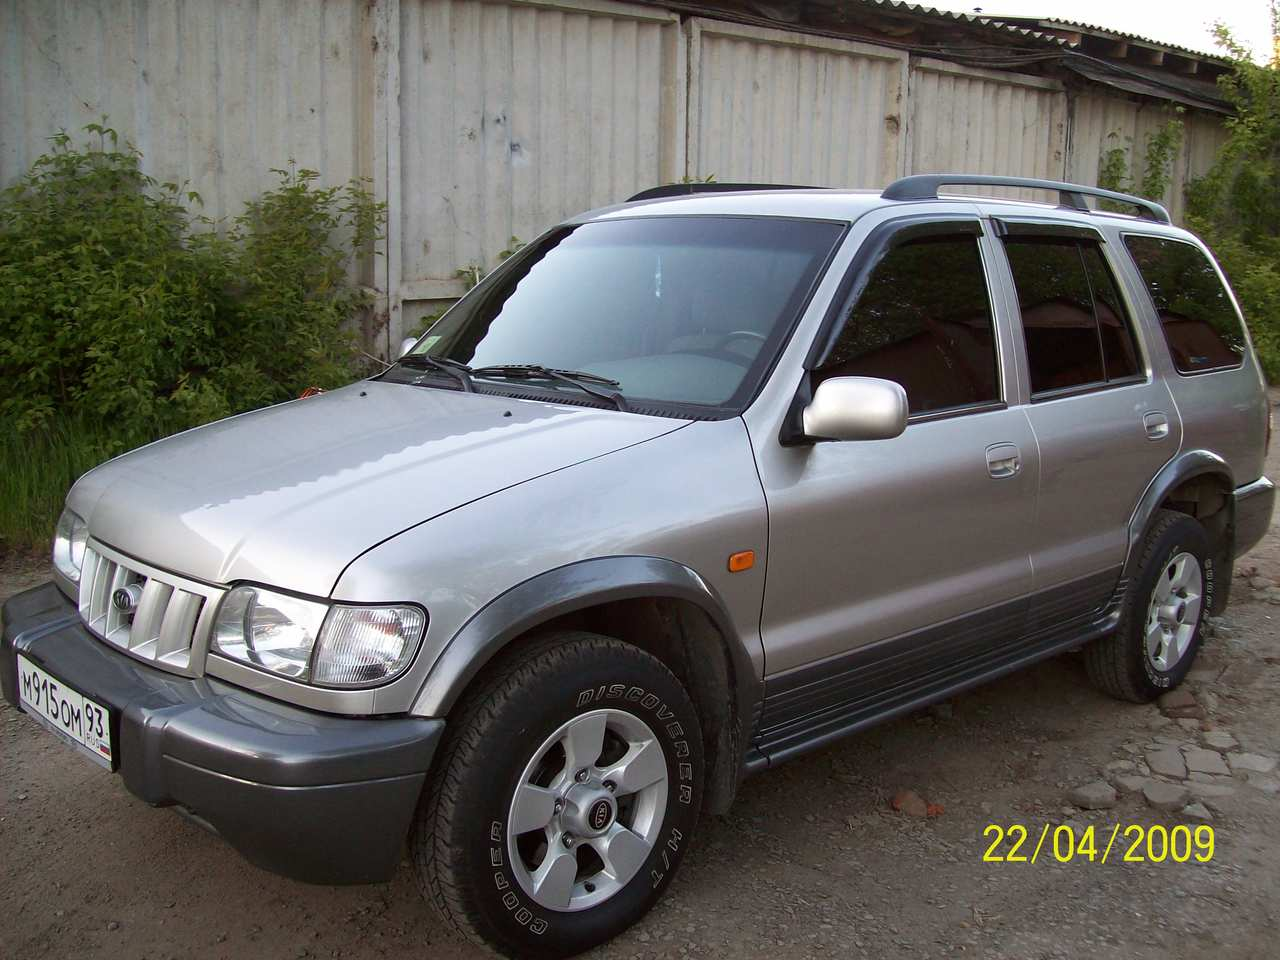 2003 kia sportage pictures gasoline manual for sale. Black Bedroom Furniture Sets. Home Design Ideas